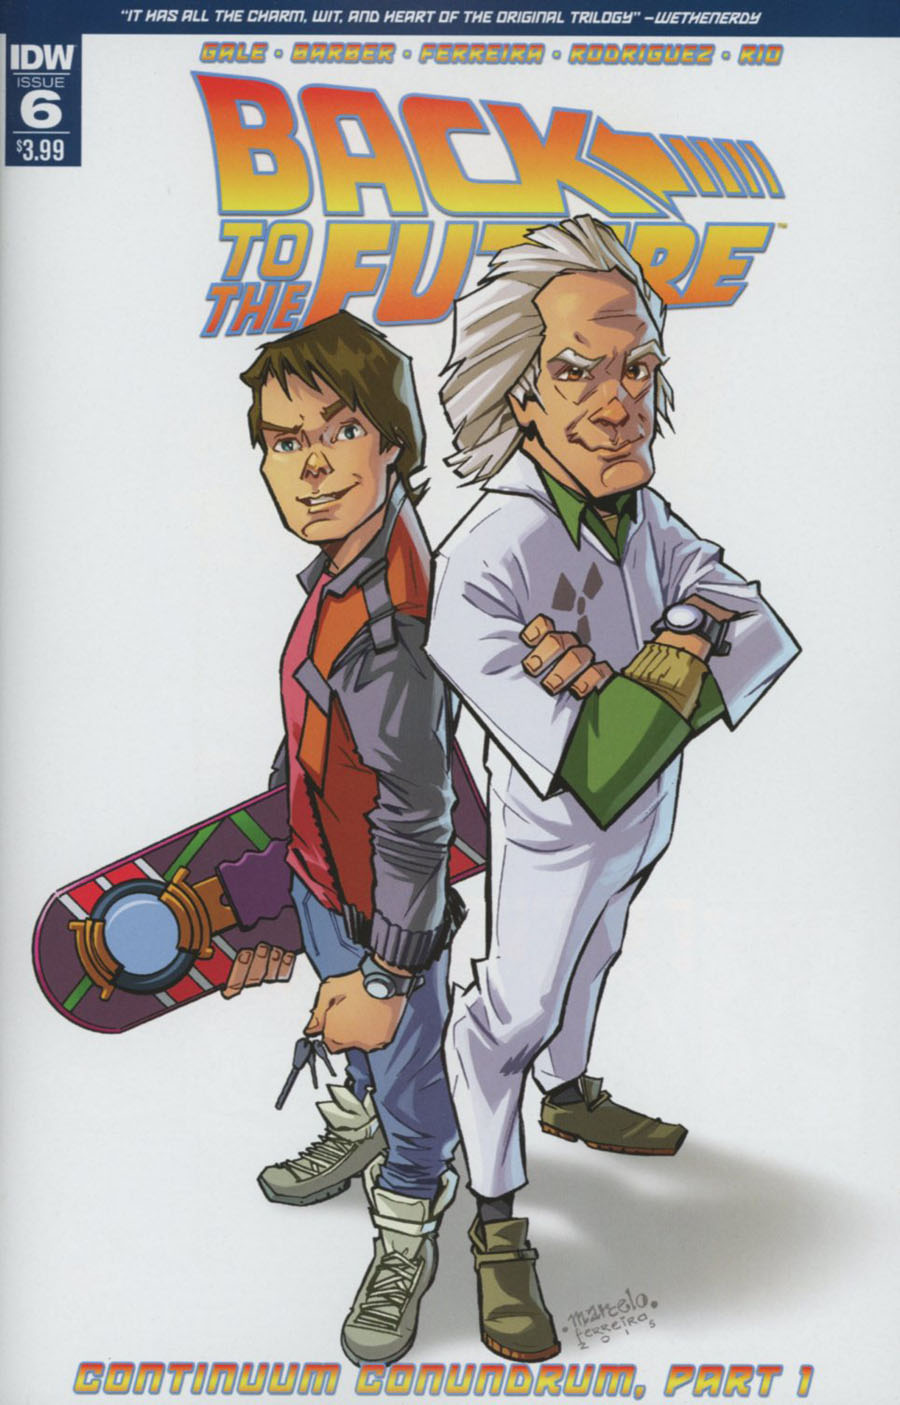 Back To The Future Vol 2 #6 Cover A Regular Marcelo Ferreira Cover